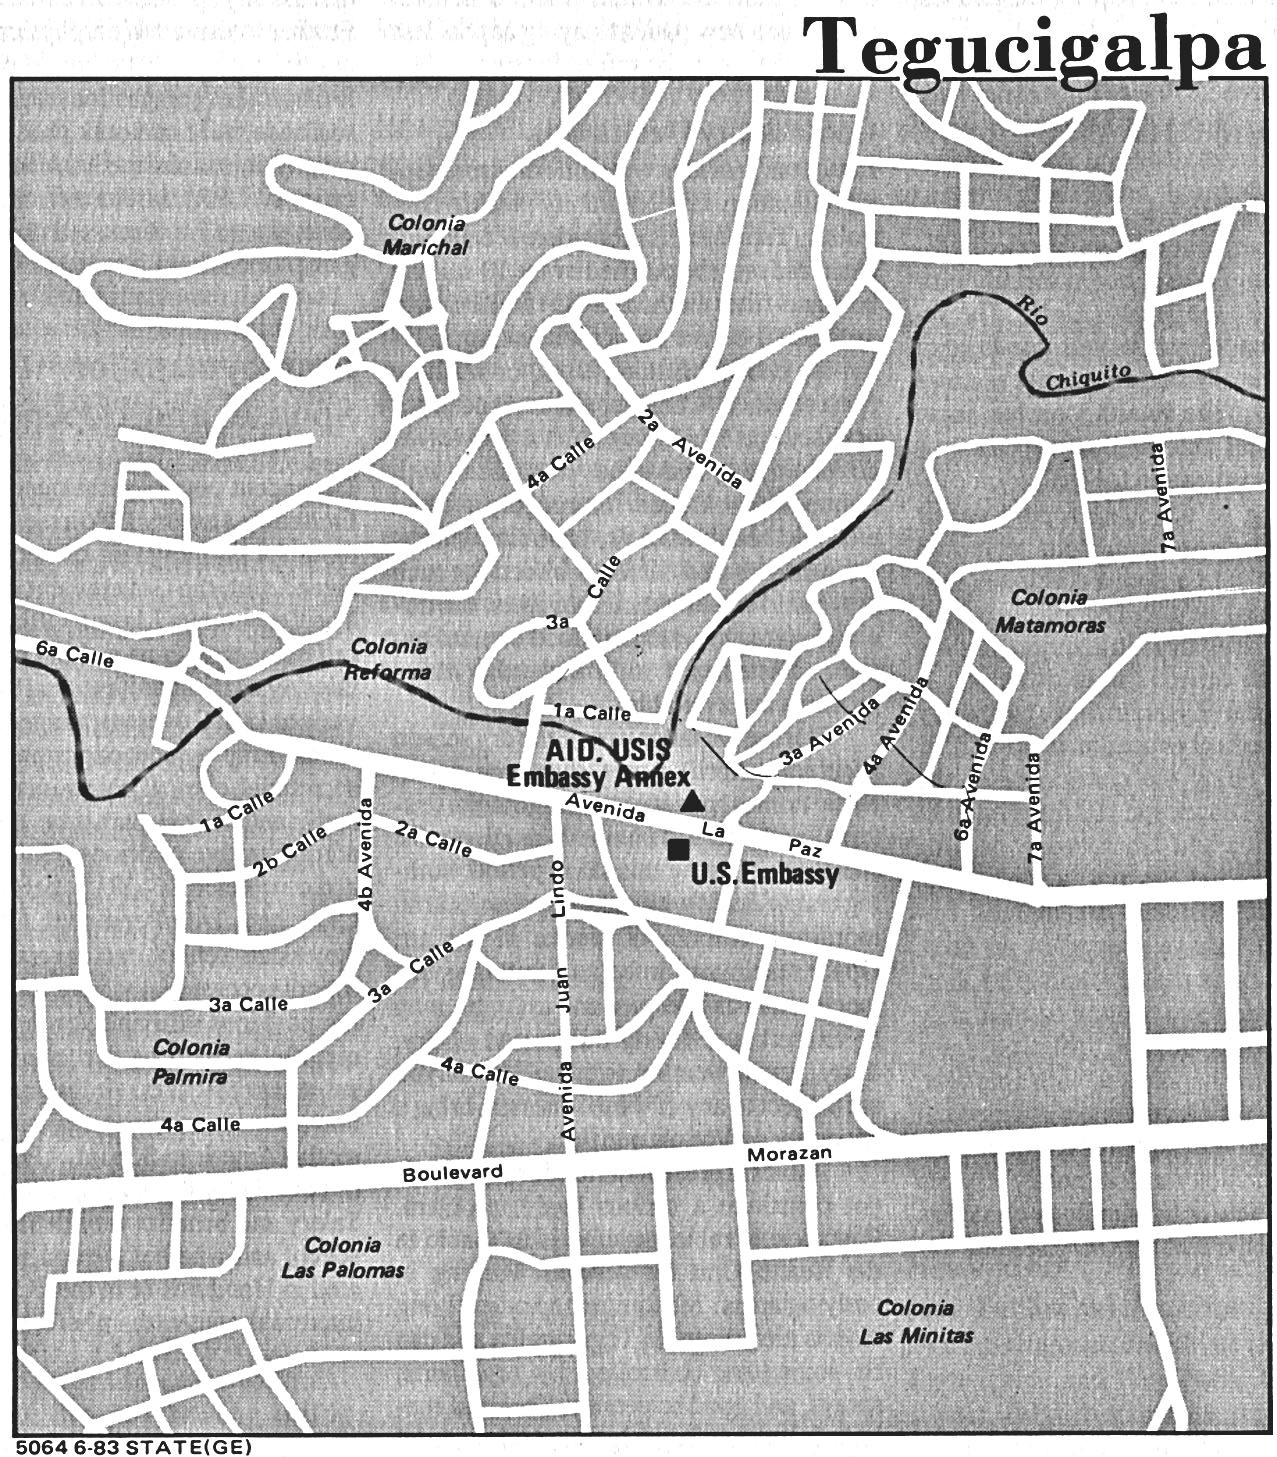 Tegucigalpa City Map